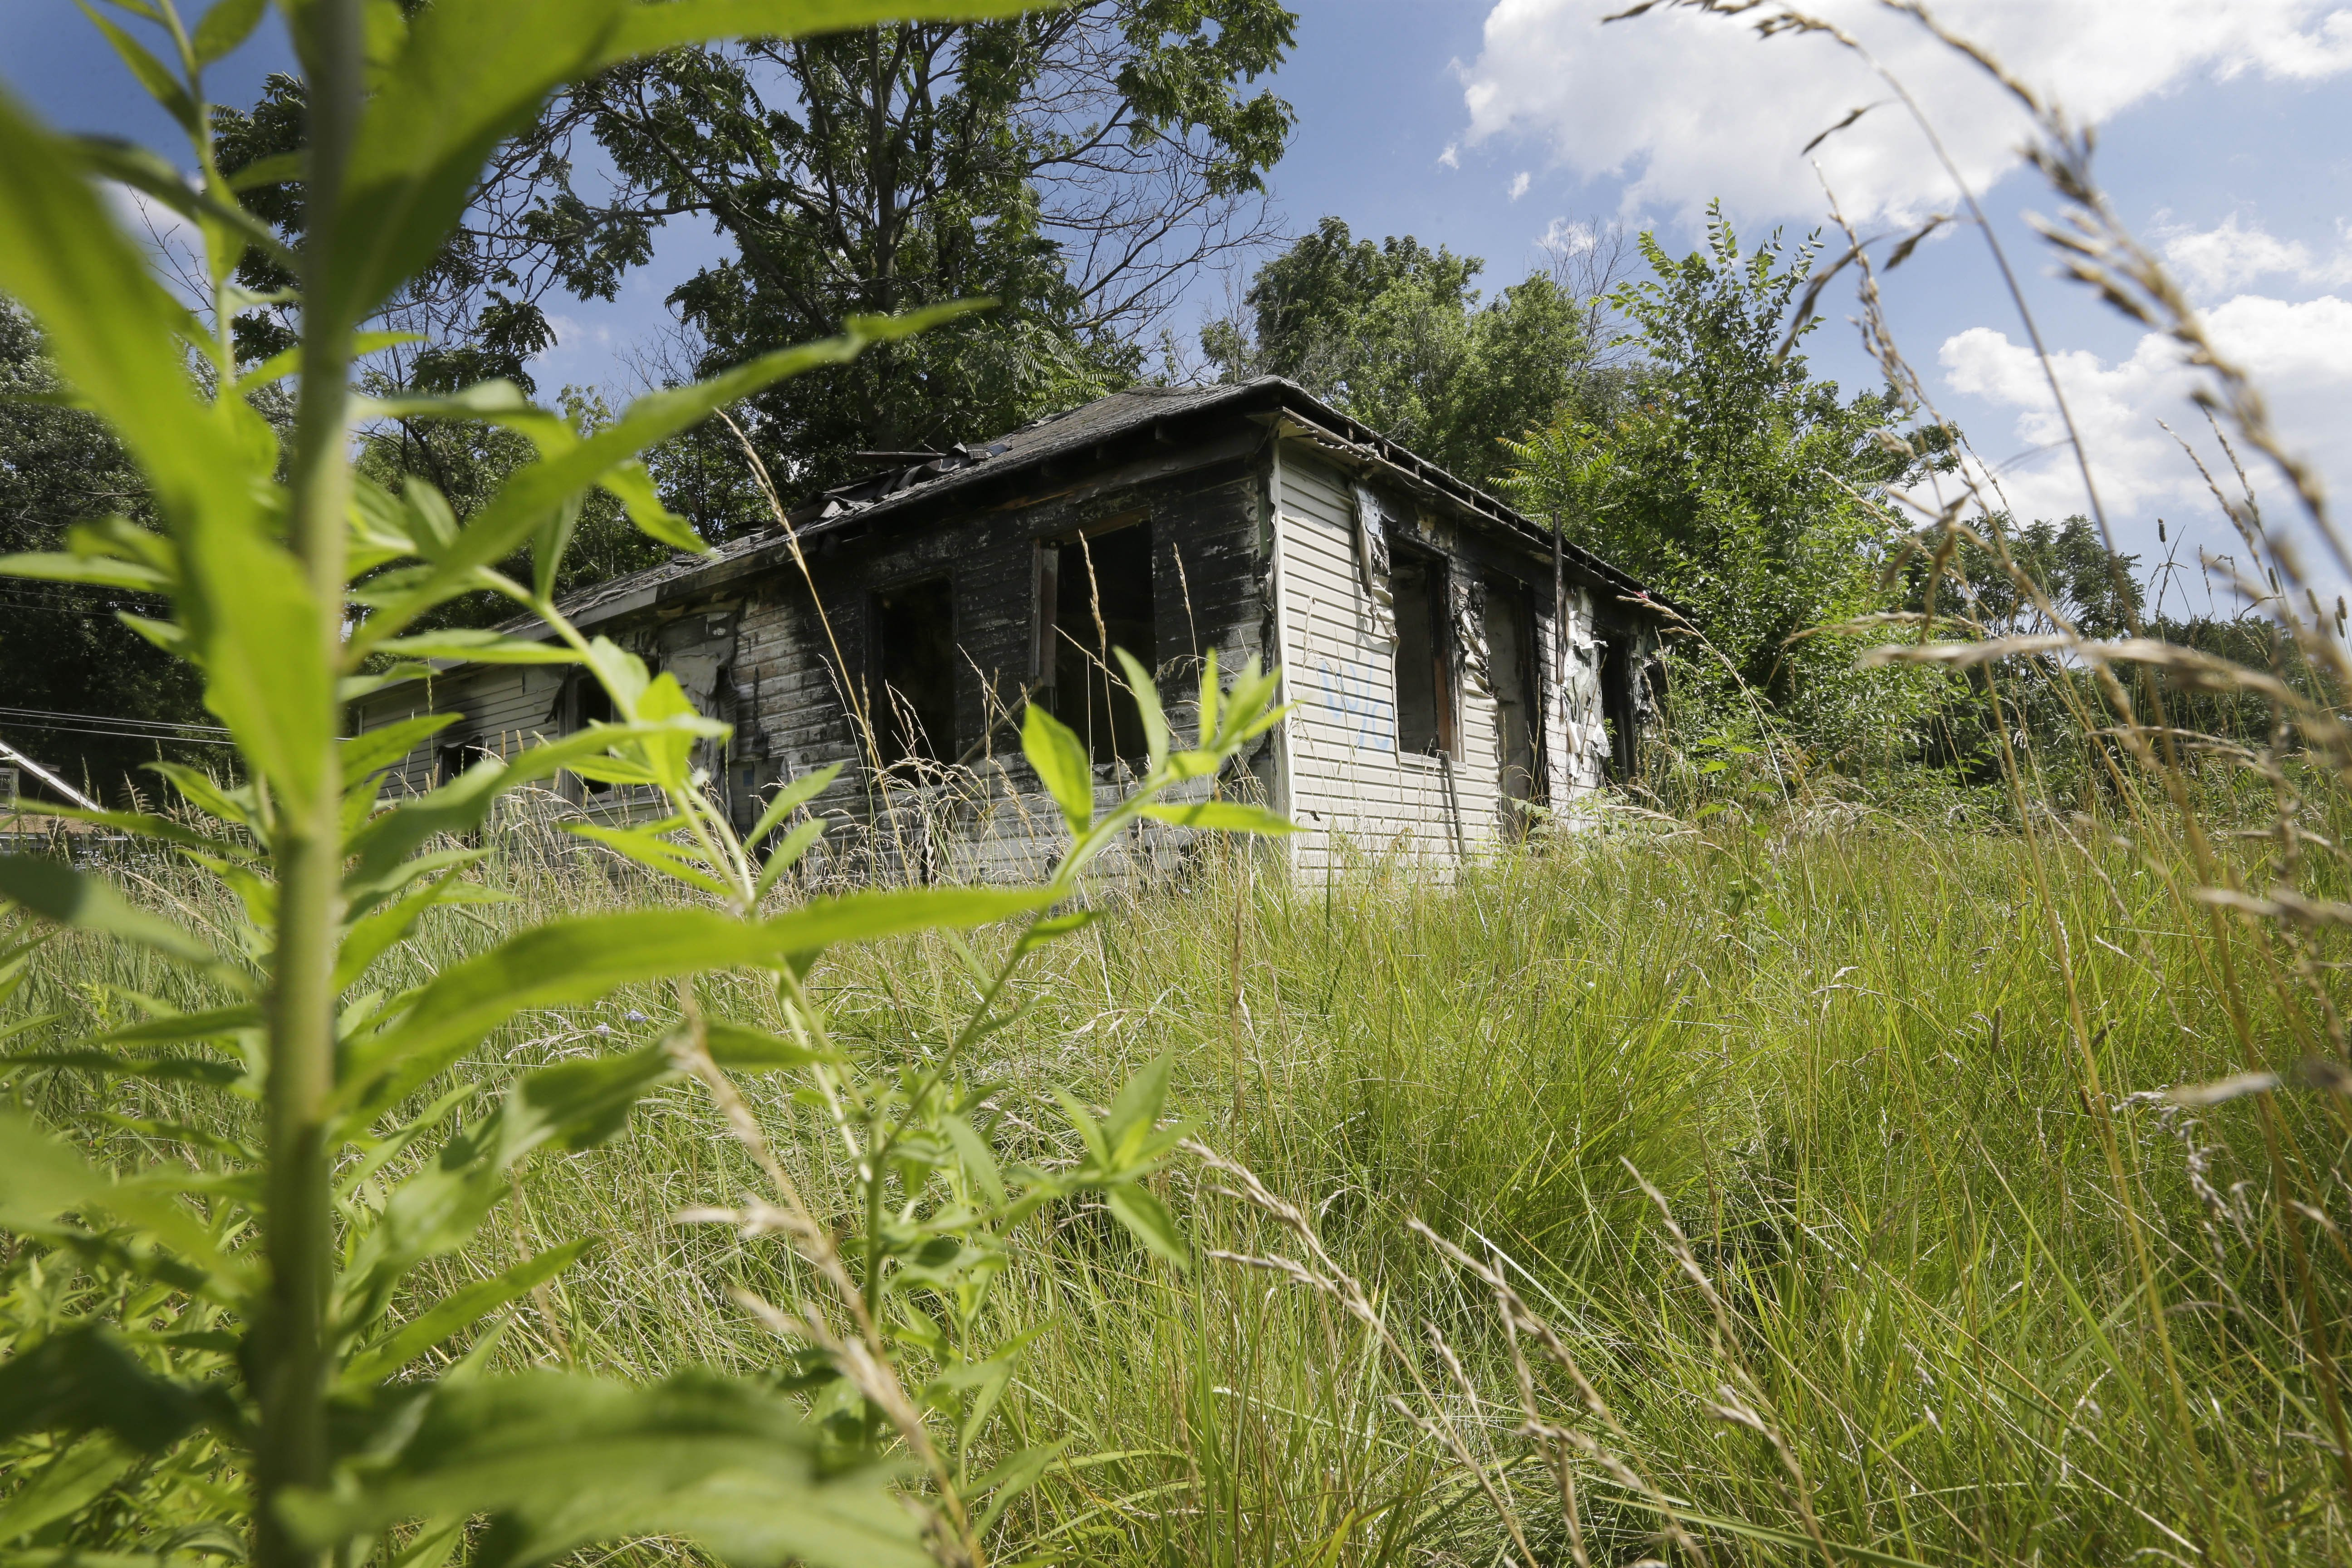 FILE - An abandoned house with an overgrown lot is seen in Brightmoor, a neighborhood on Detroit's northwest side, July 19, 2013. Brightmoor is one of the city's more blighted neighborhoods and improving Brightmoor is a battle a local activist ha...